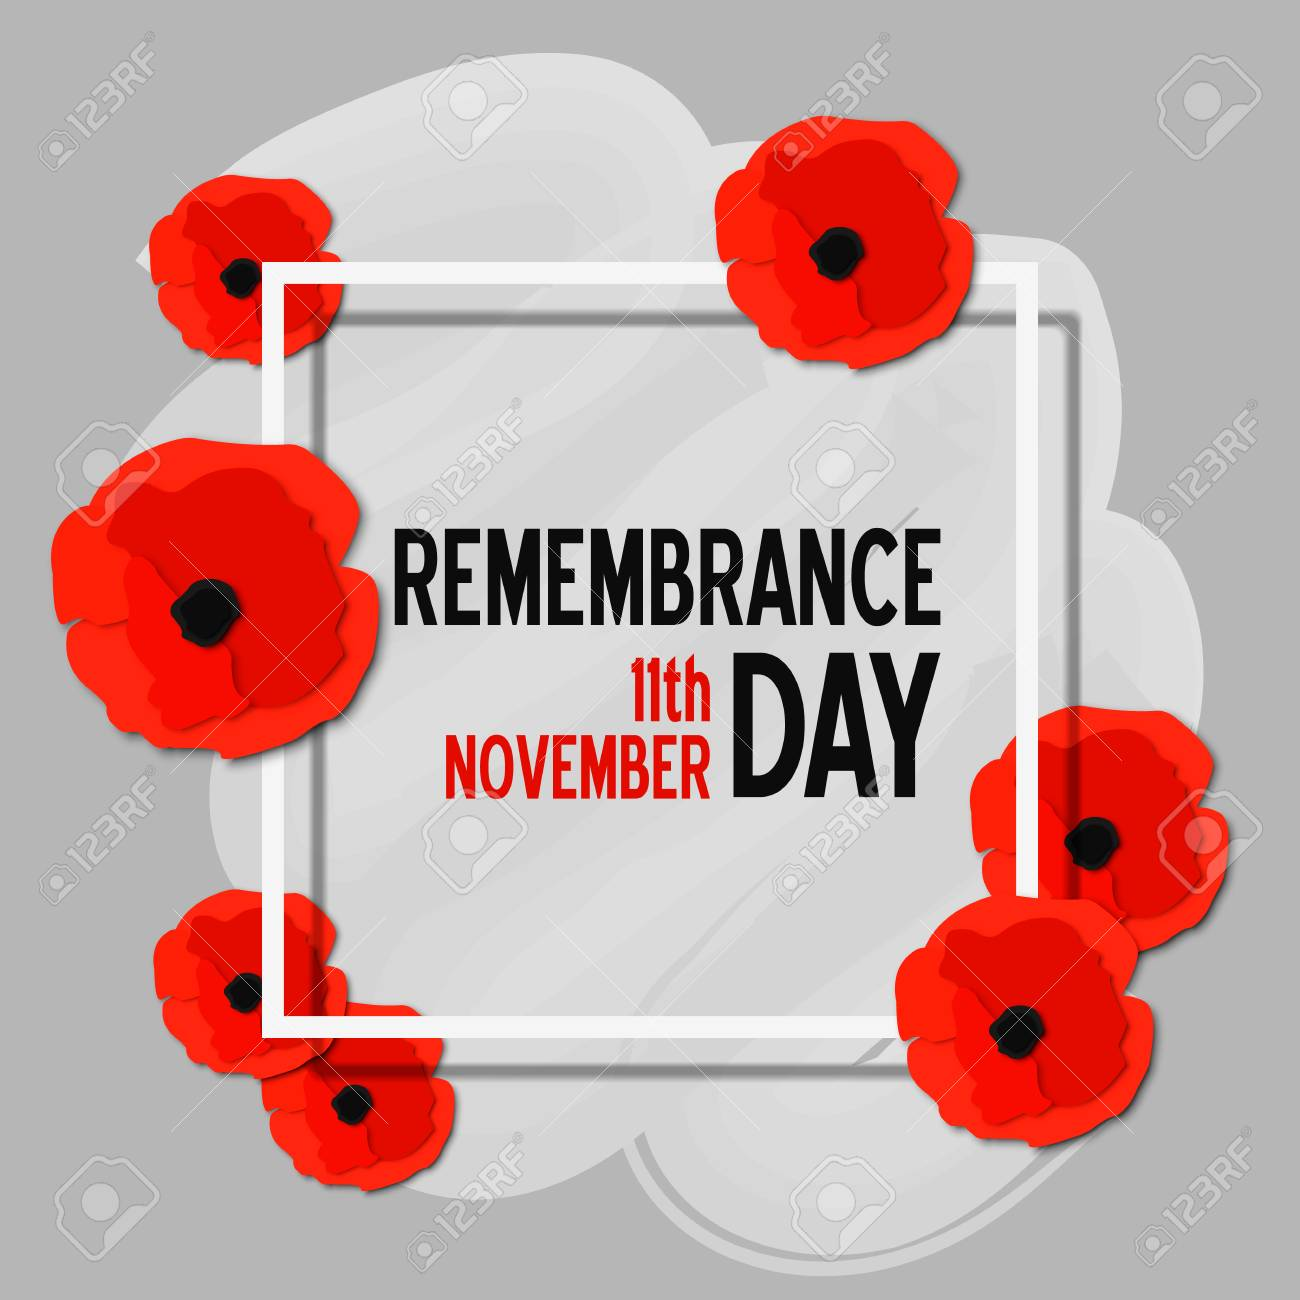 Remembrance Day Paper Cut Poster With Poppy Flowers And White